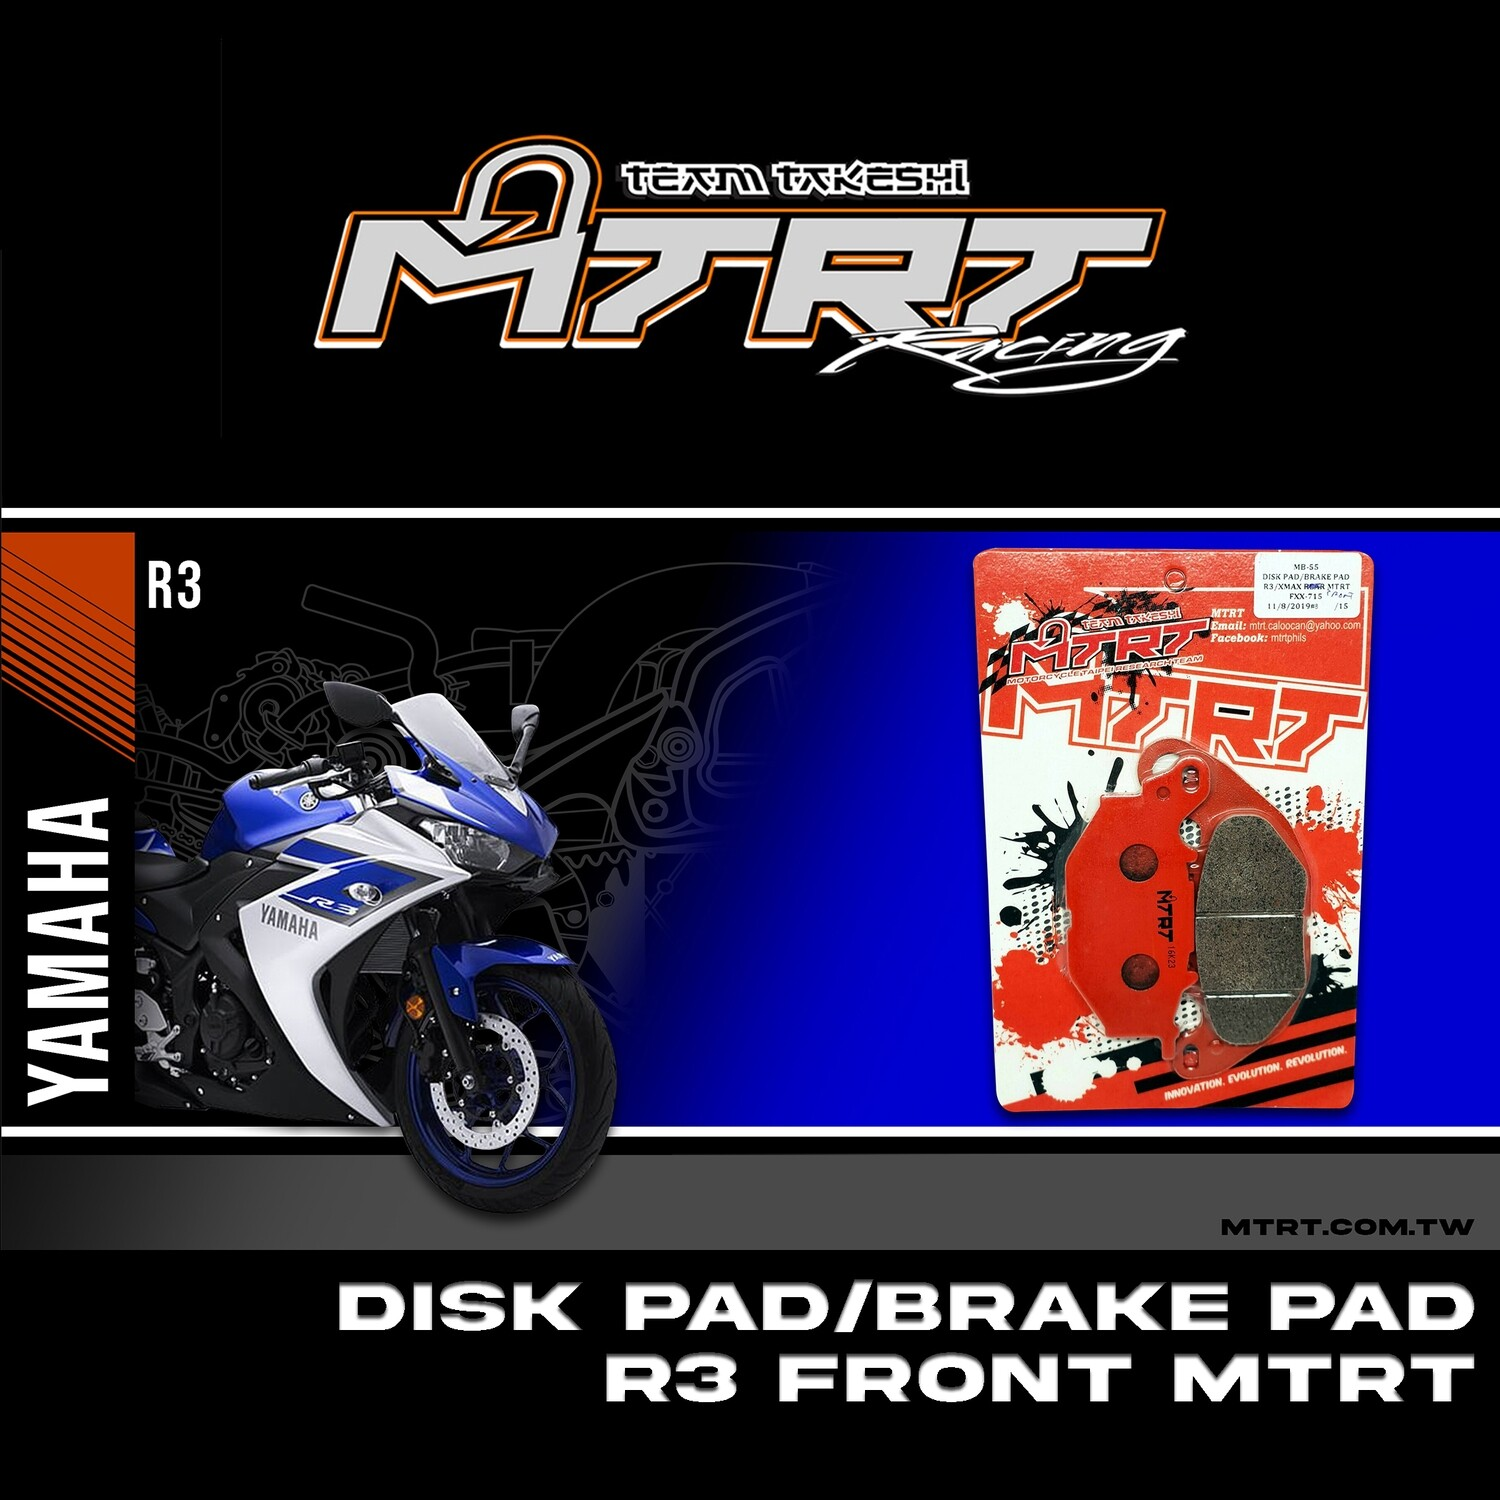 DISK PAD/BRAKE PAD R3 FRONT / XMAX FRONT  MTRT